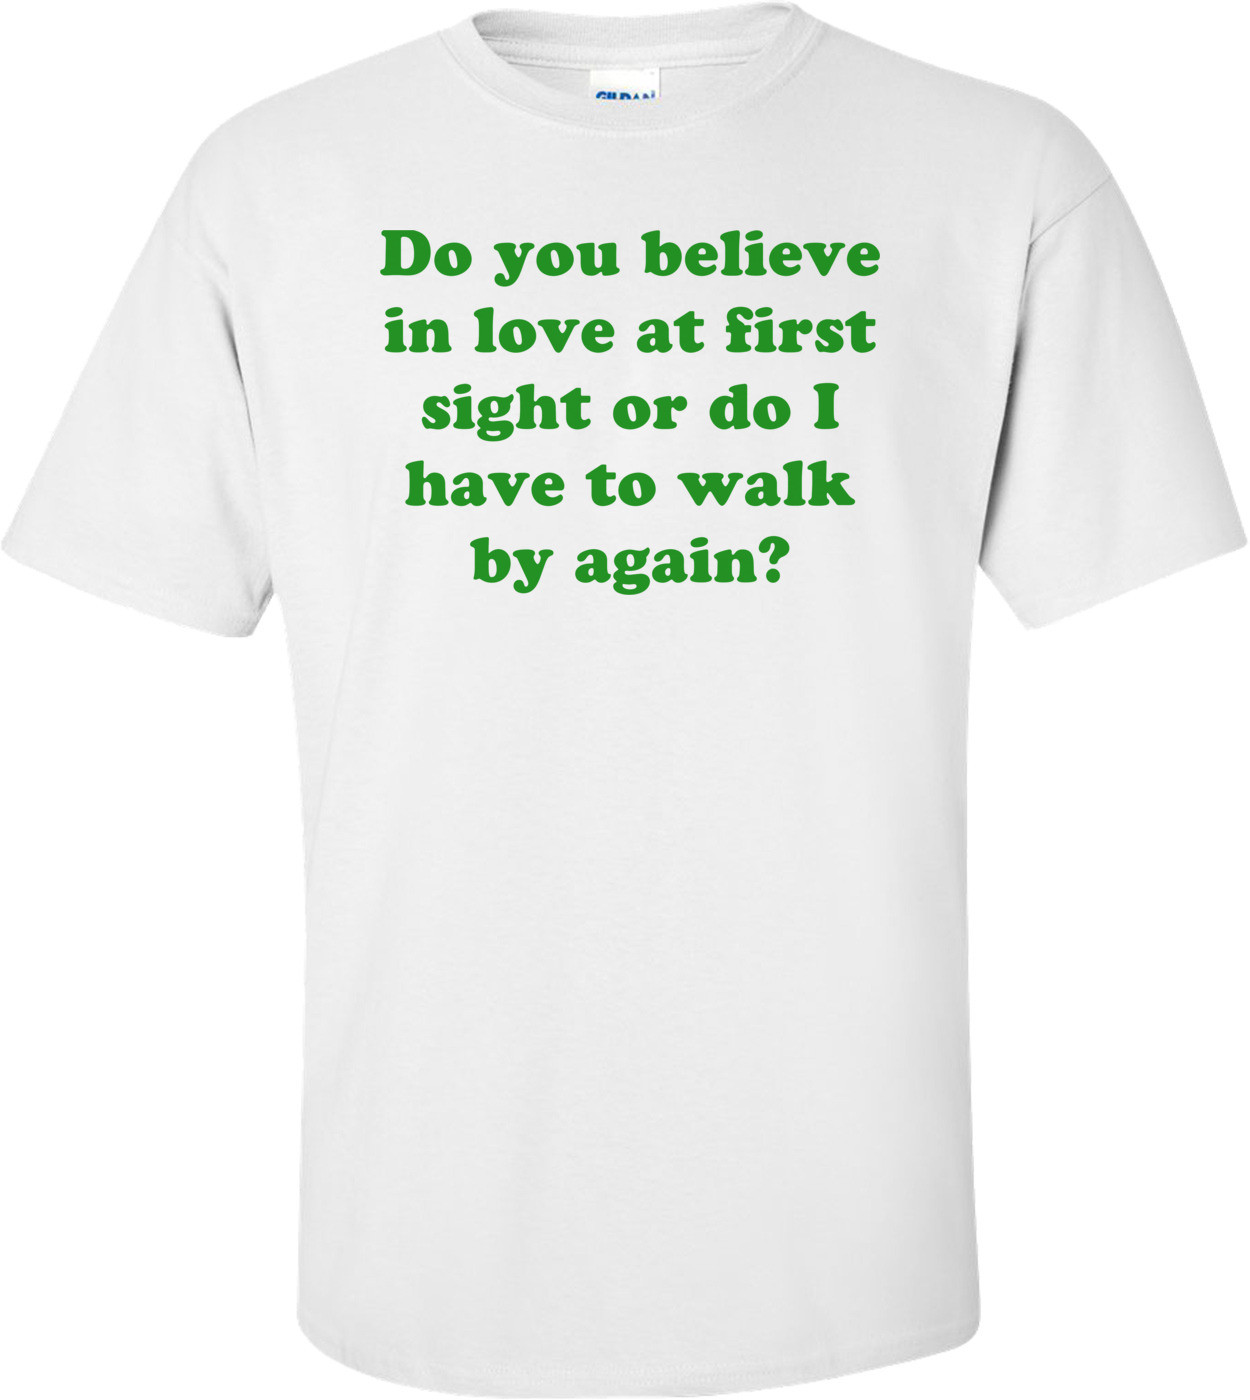 Do you believe in love at first sight or do I have to walk by again? Shirt